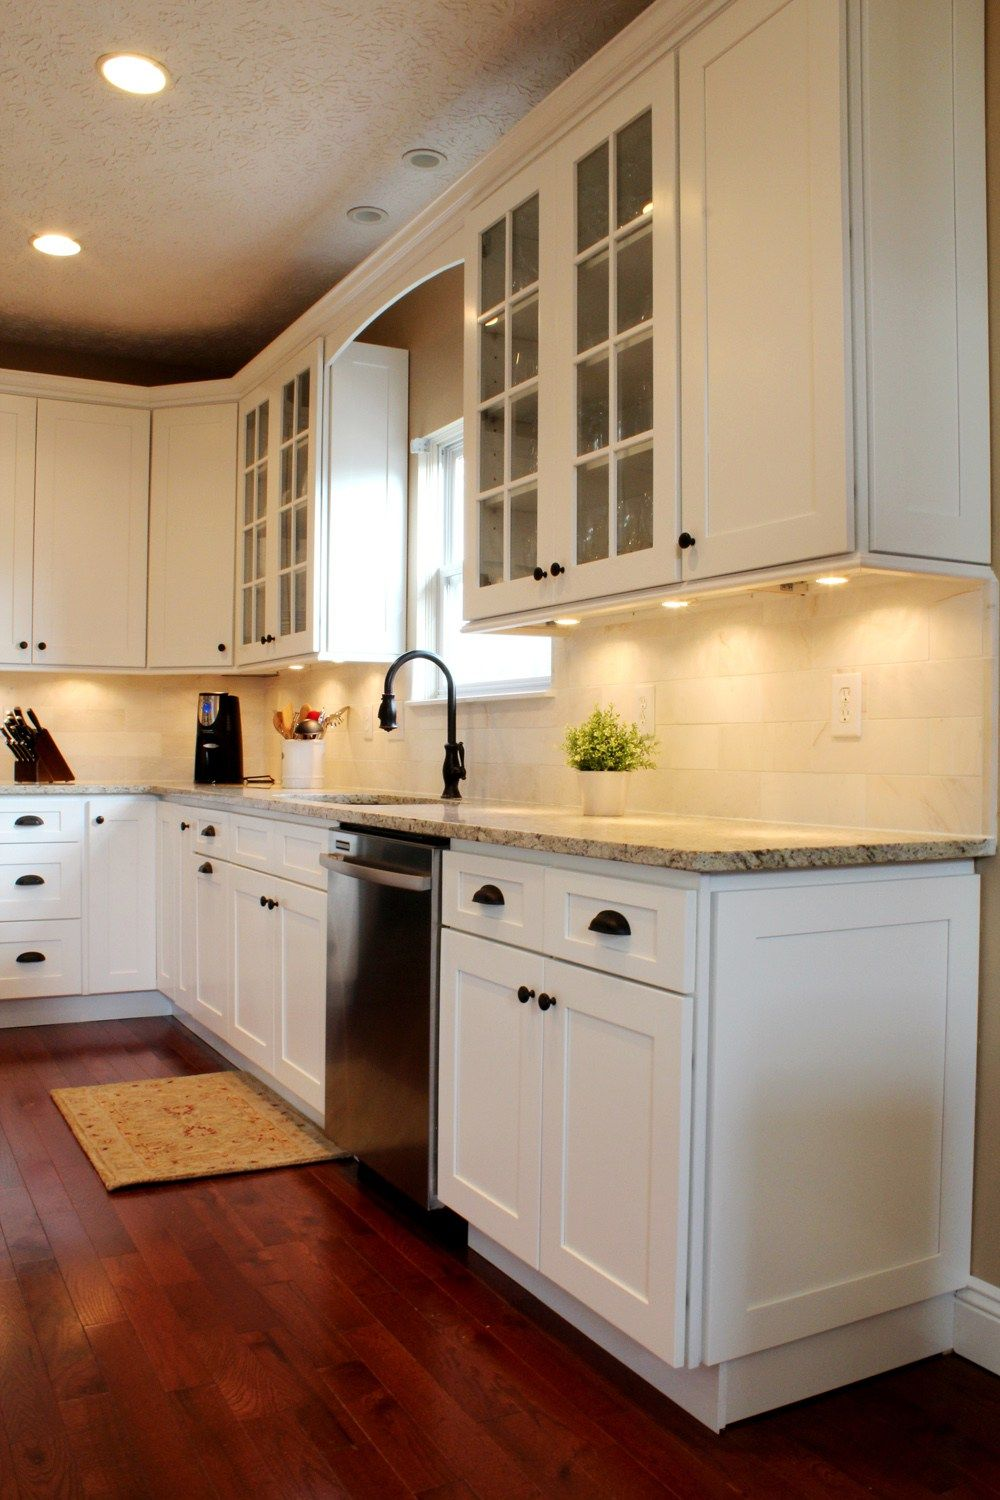 Ice White Shaker Kitchen Shaker Style Kitchen Cabinets White Shaker Kitchen Kitchen Cabinet Remodel